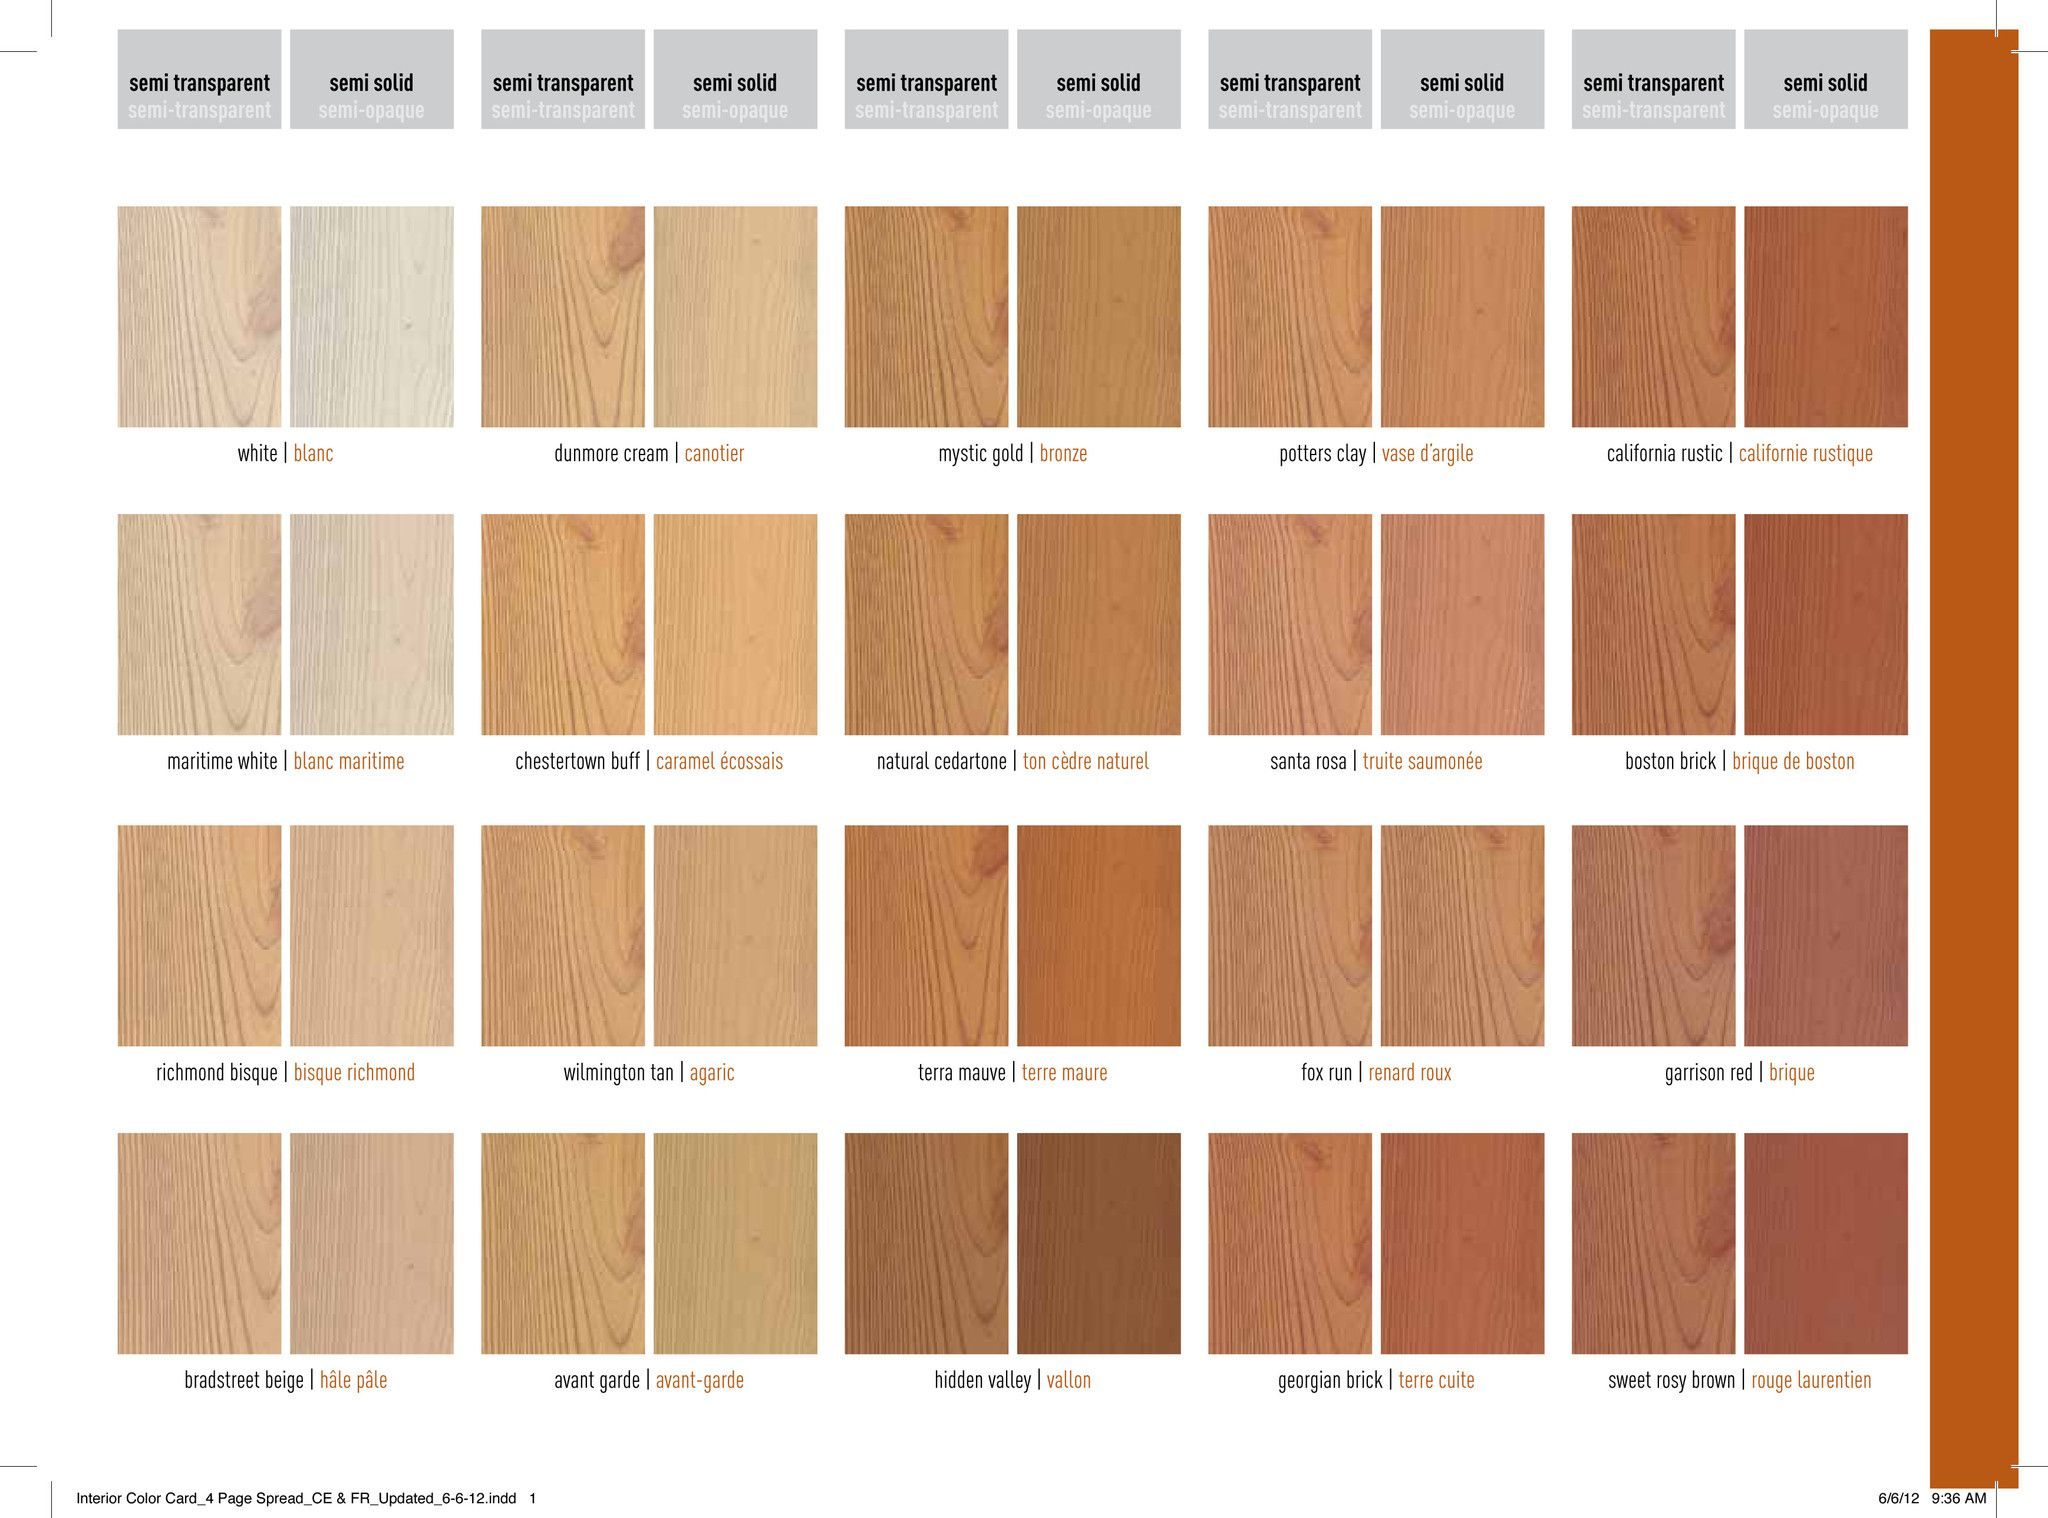 Benjamin moore arborcoat premium exterior semi transparent deck benjamin moore arborcoat premium exterior semi transparent deck siding stain provides protection and color without obscuring the grain or texture of th nvjuhfo Choice Image